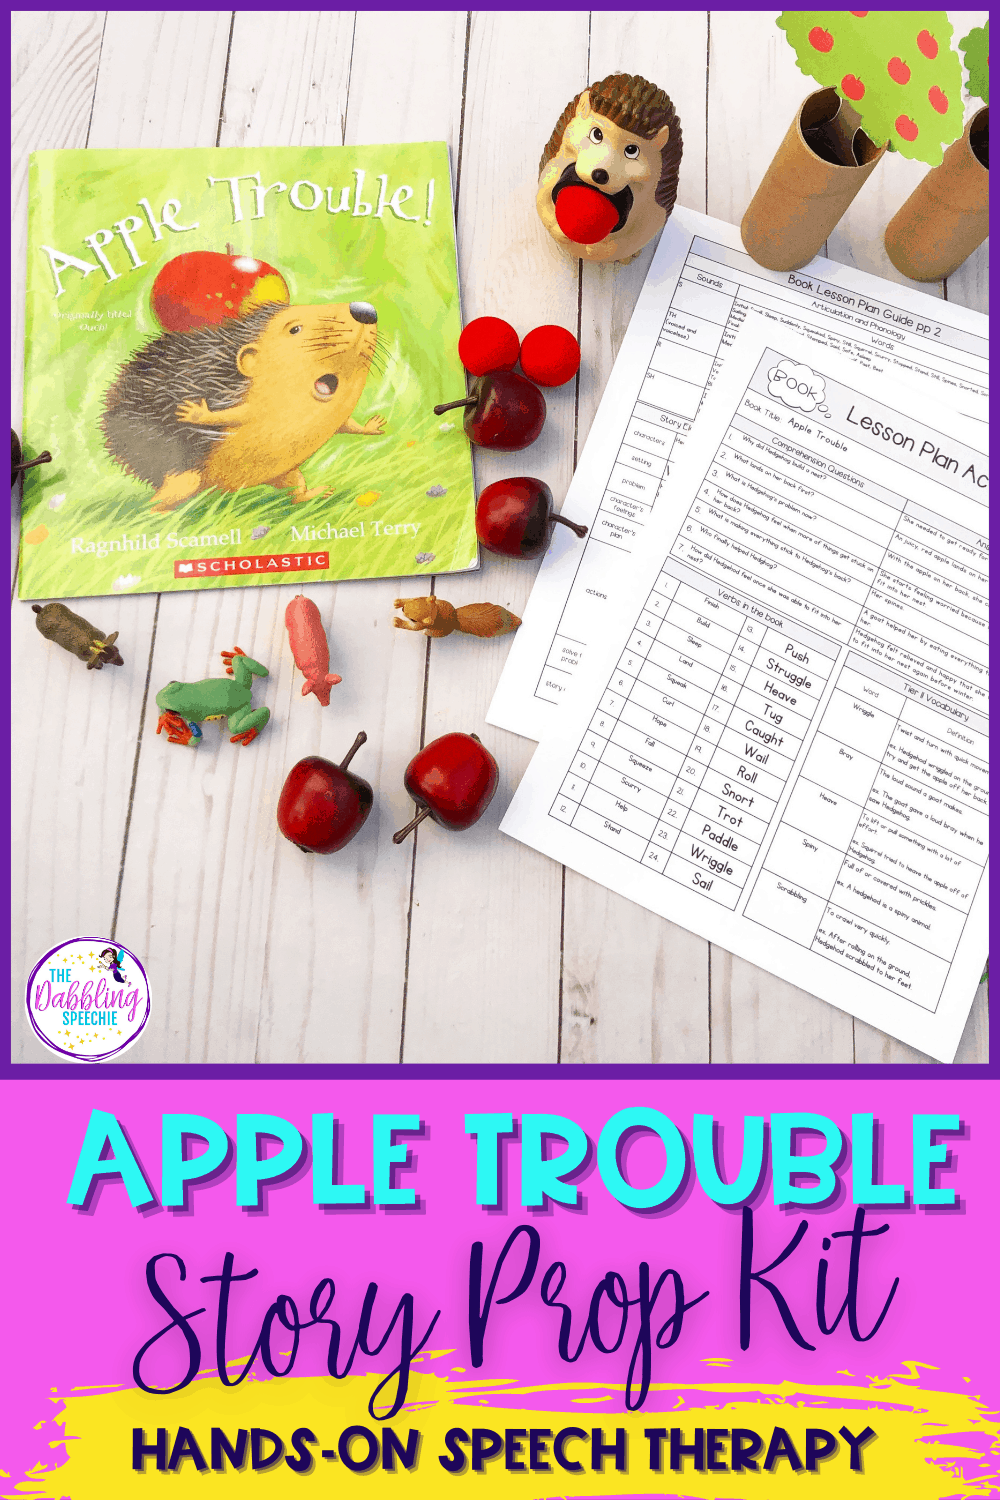 Making an Apple Trouble Story Prop Kit to increase engagement in your language therapy sessions